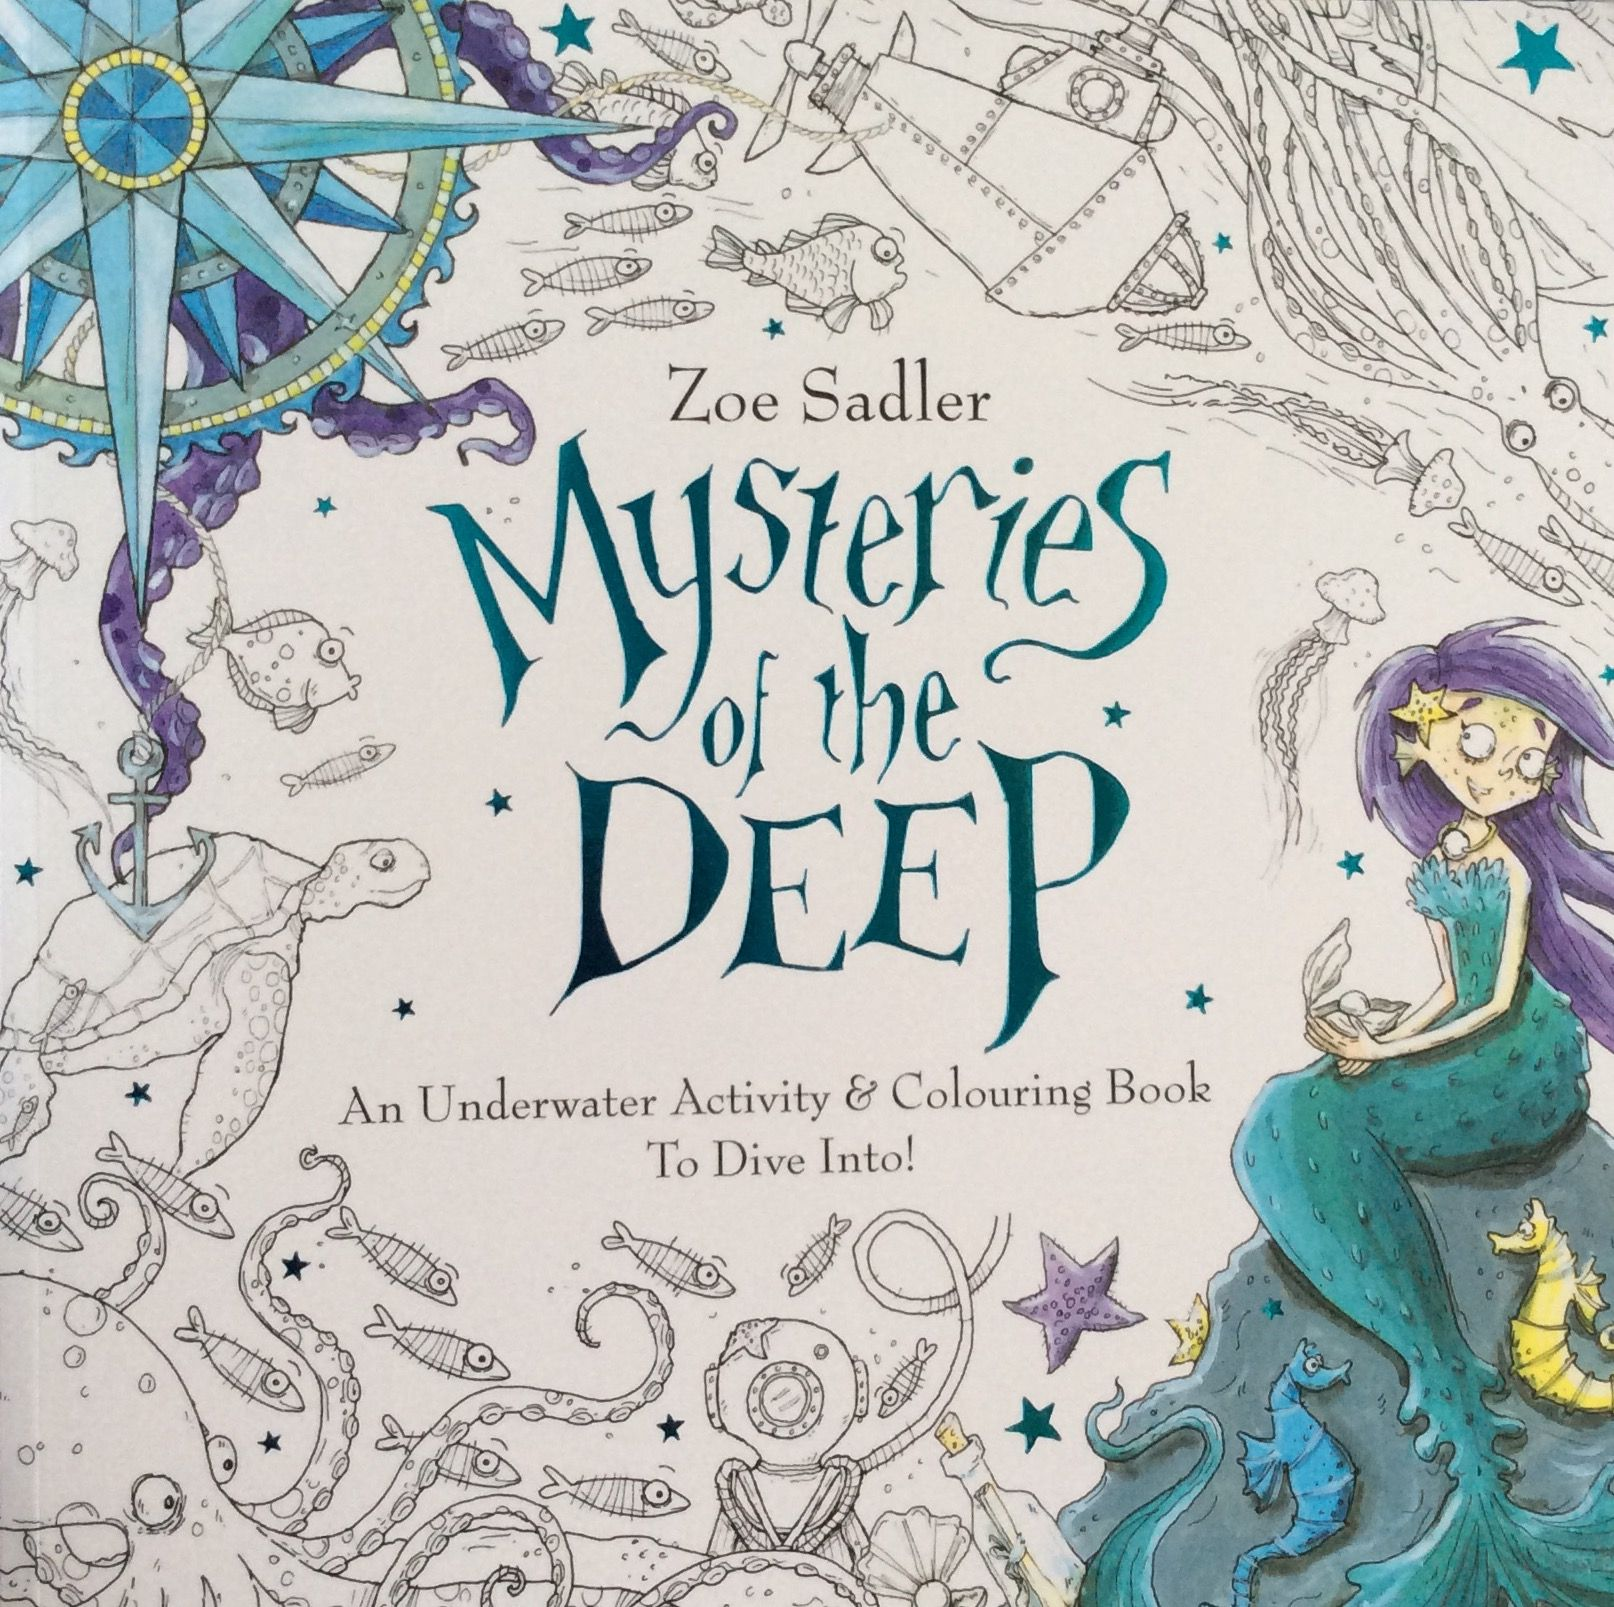 Mysteries of the Deep, Zoe Sadler, Isle of Wight, my